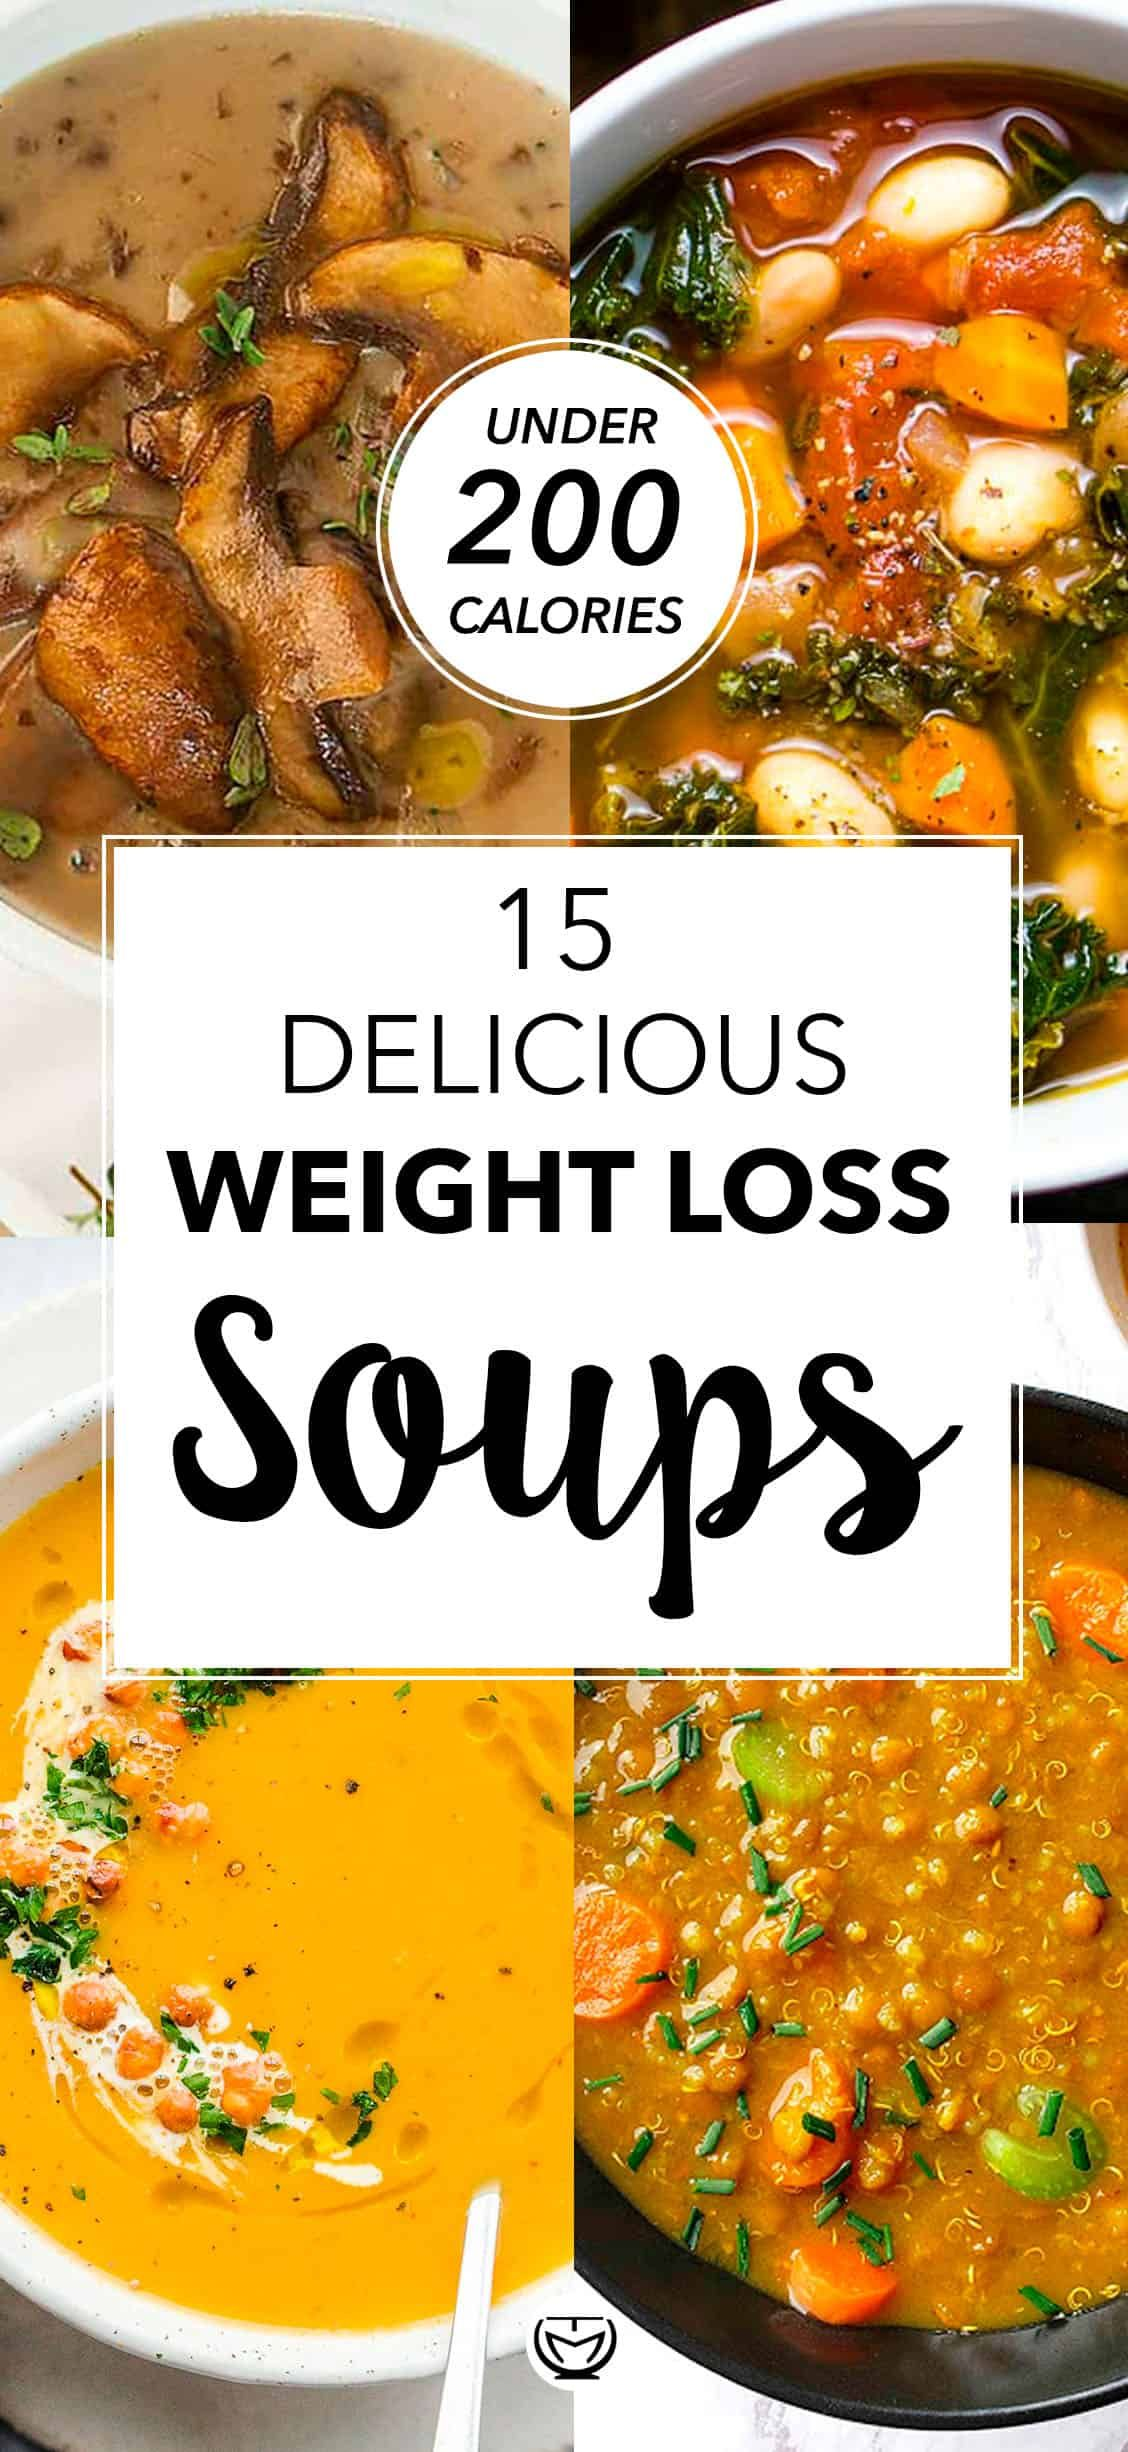 15+ HEALTHY WEIGHT LOSS SOUPS (UNDER 200 CALORIES)